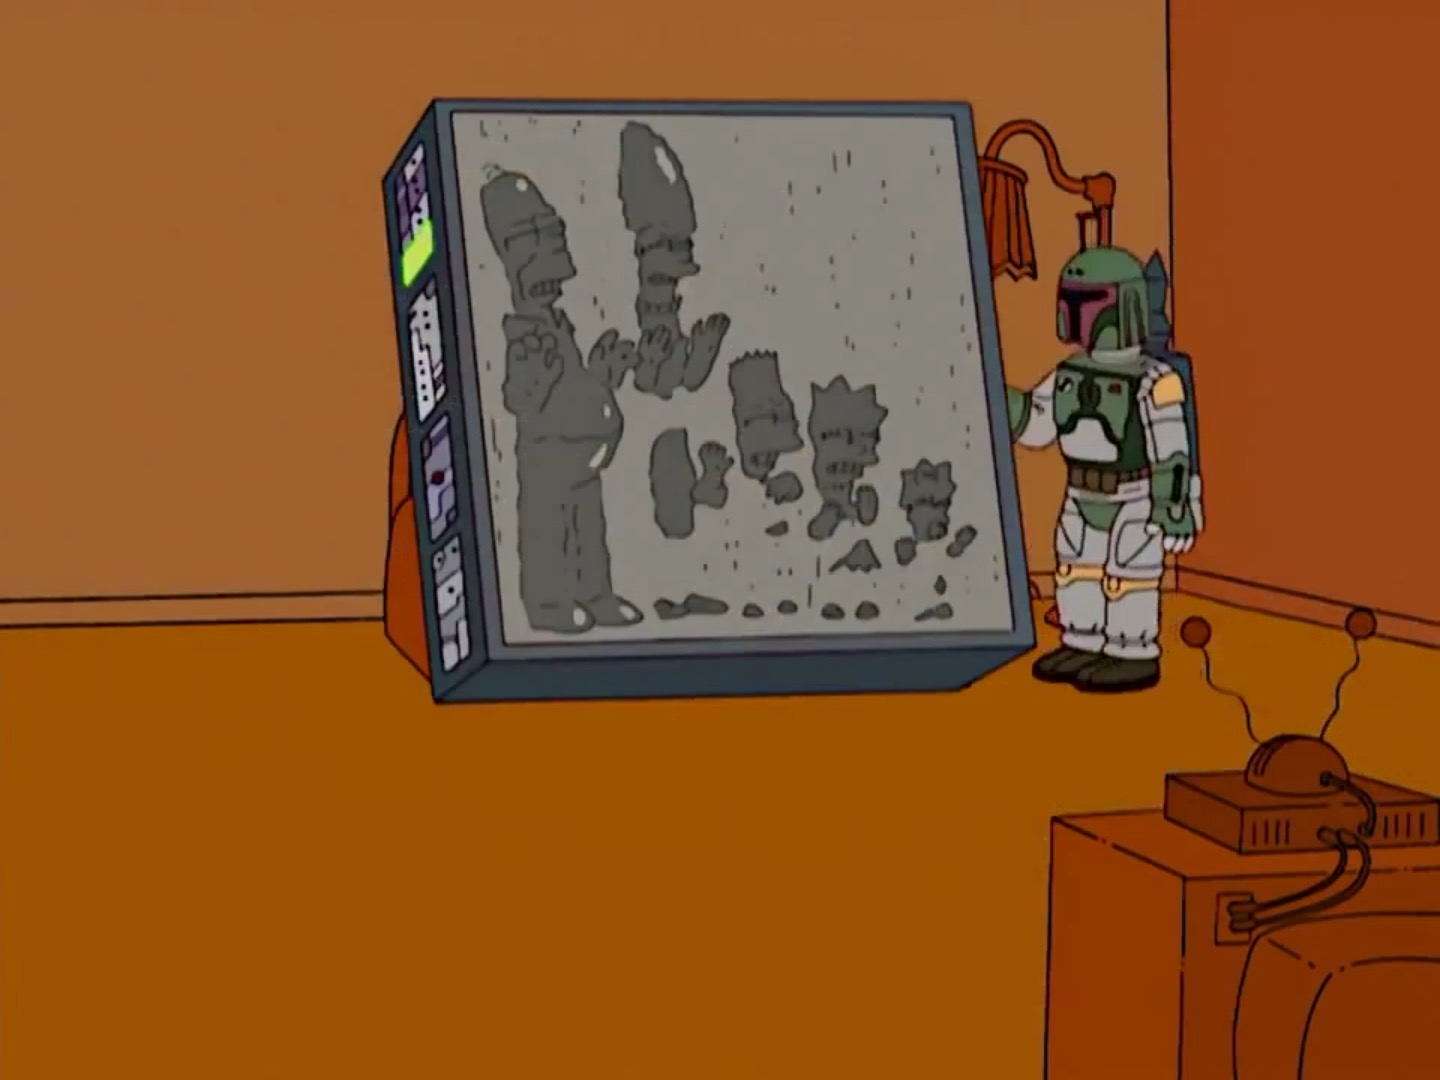 Carbonite Family couch gag